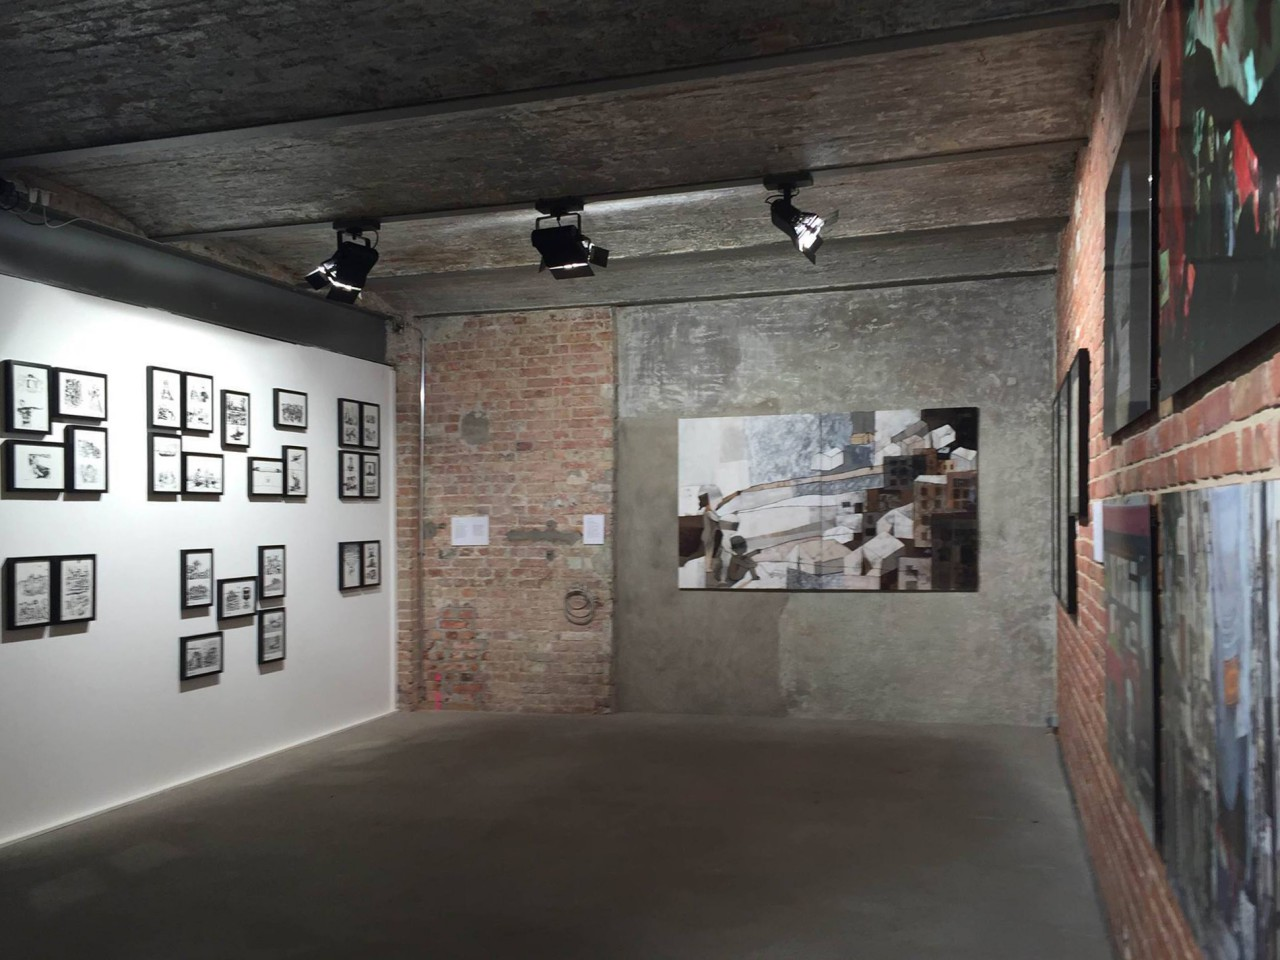 Exhibition, The Box, Berlin, 2015